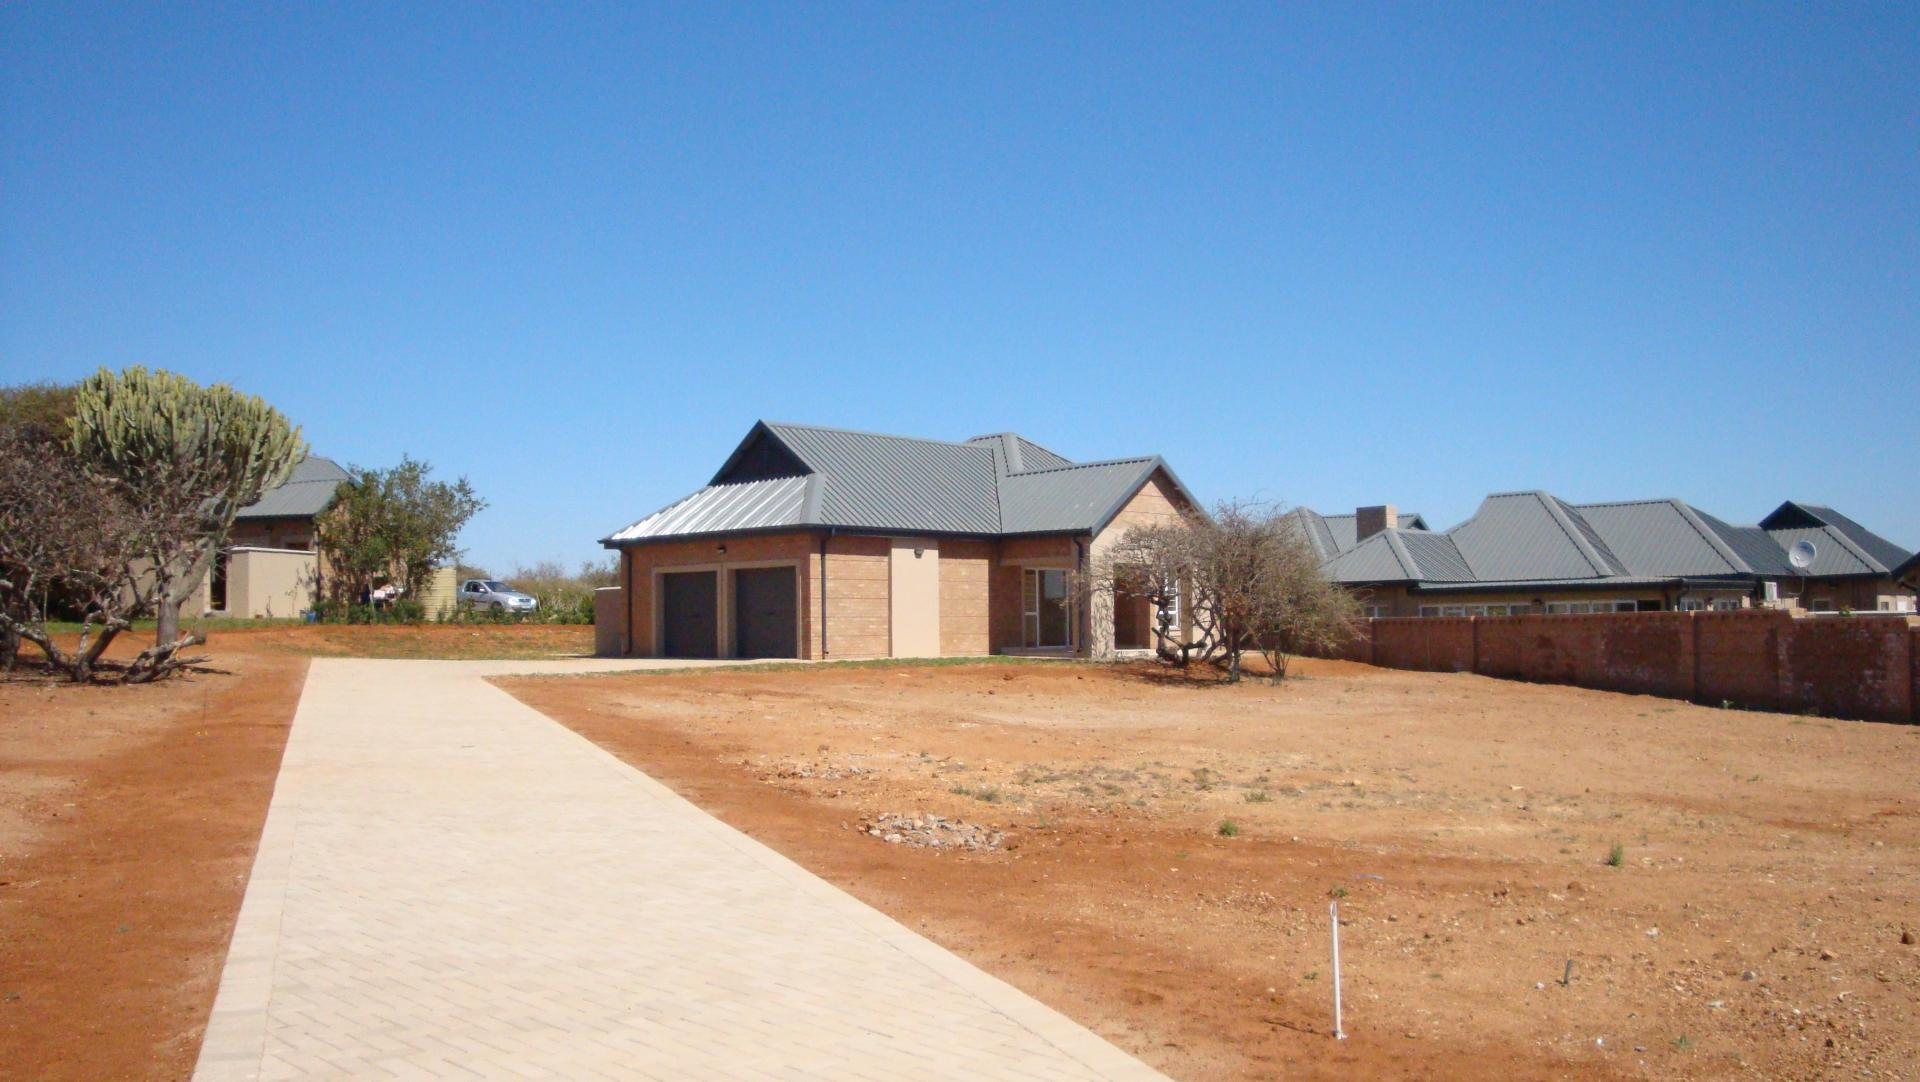 2 bedroom House for sale in Polokwane